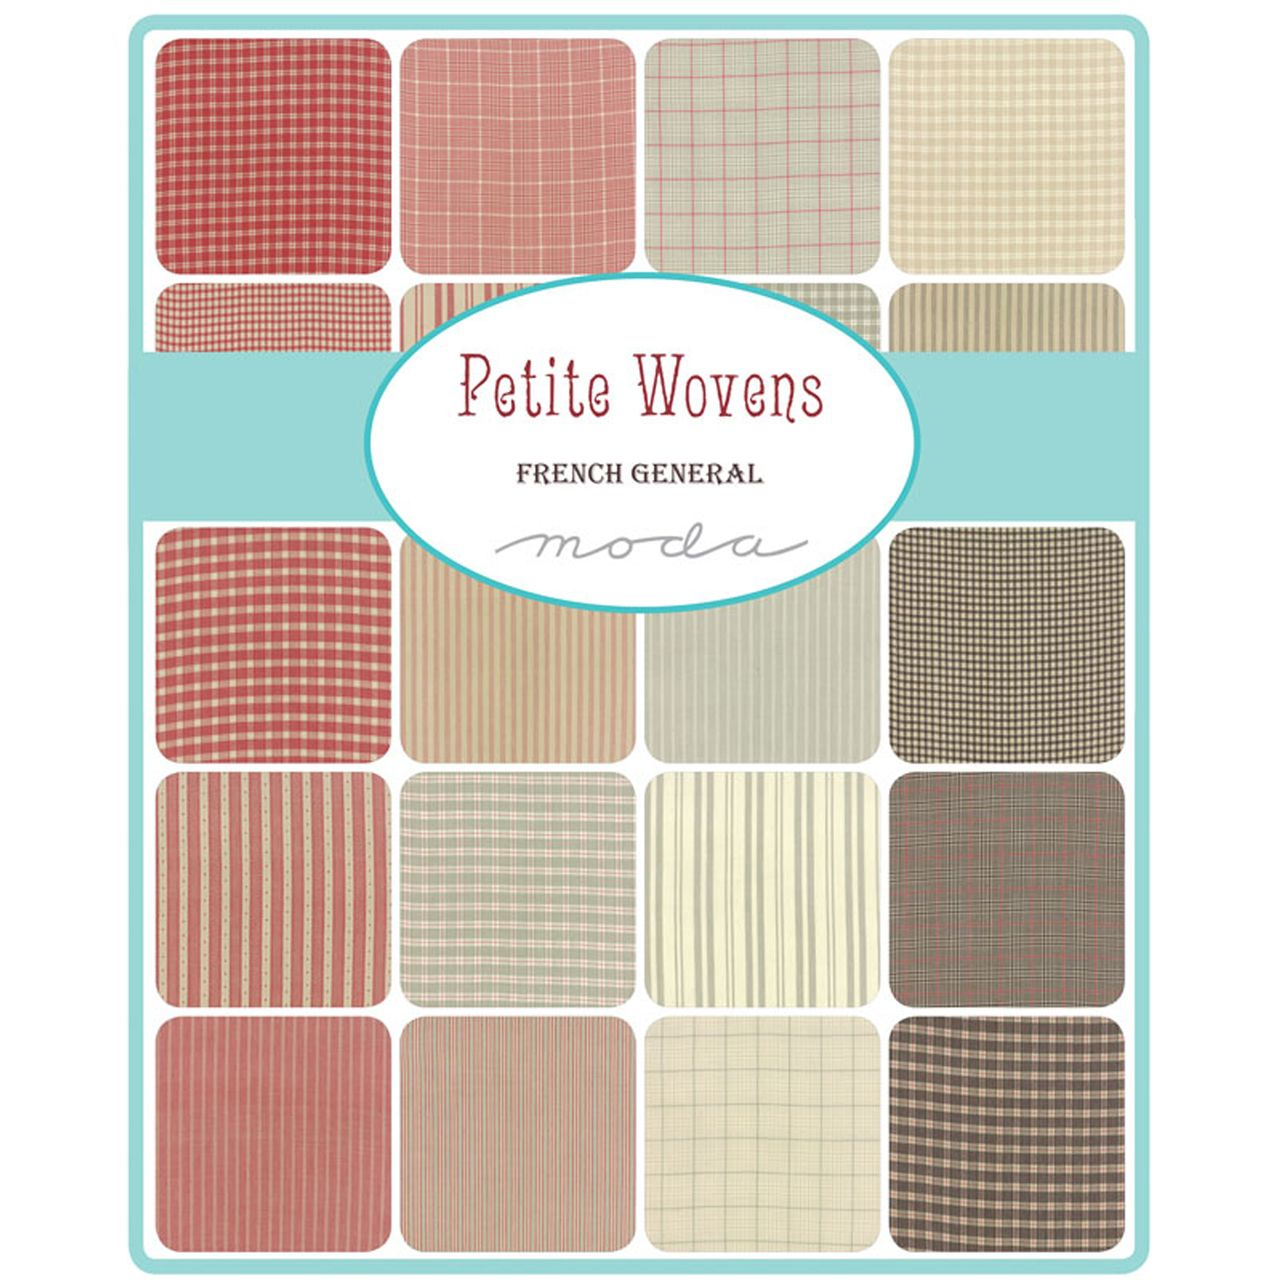 Crazy Quilt Girl Fabric Shop - PETITE WOVENS Charm Pack by French ... : crazy quilt fabric packs - Adamdwight.com